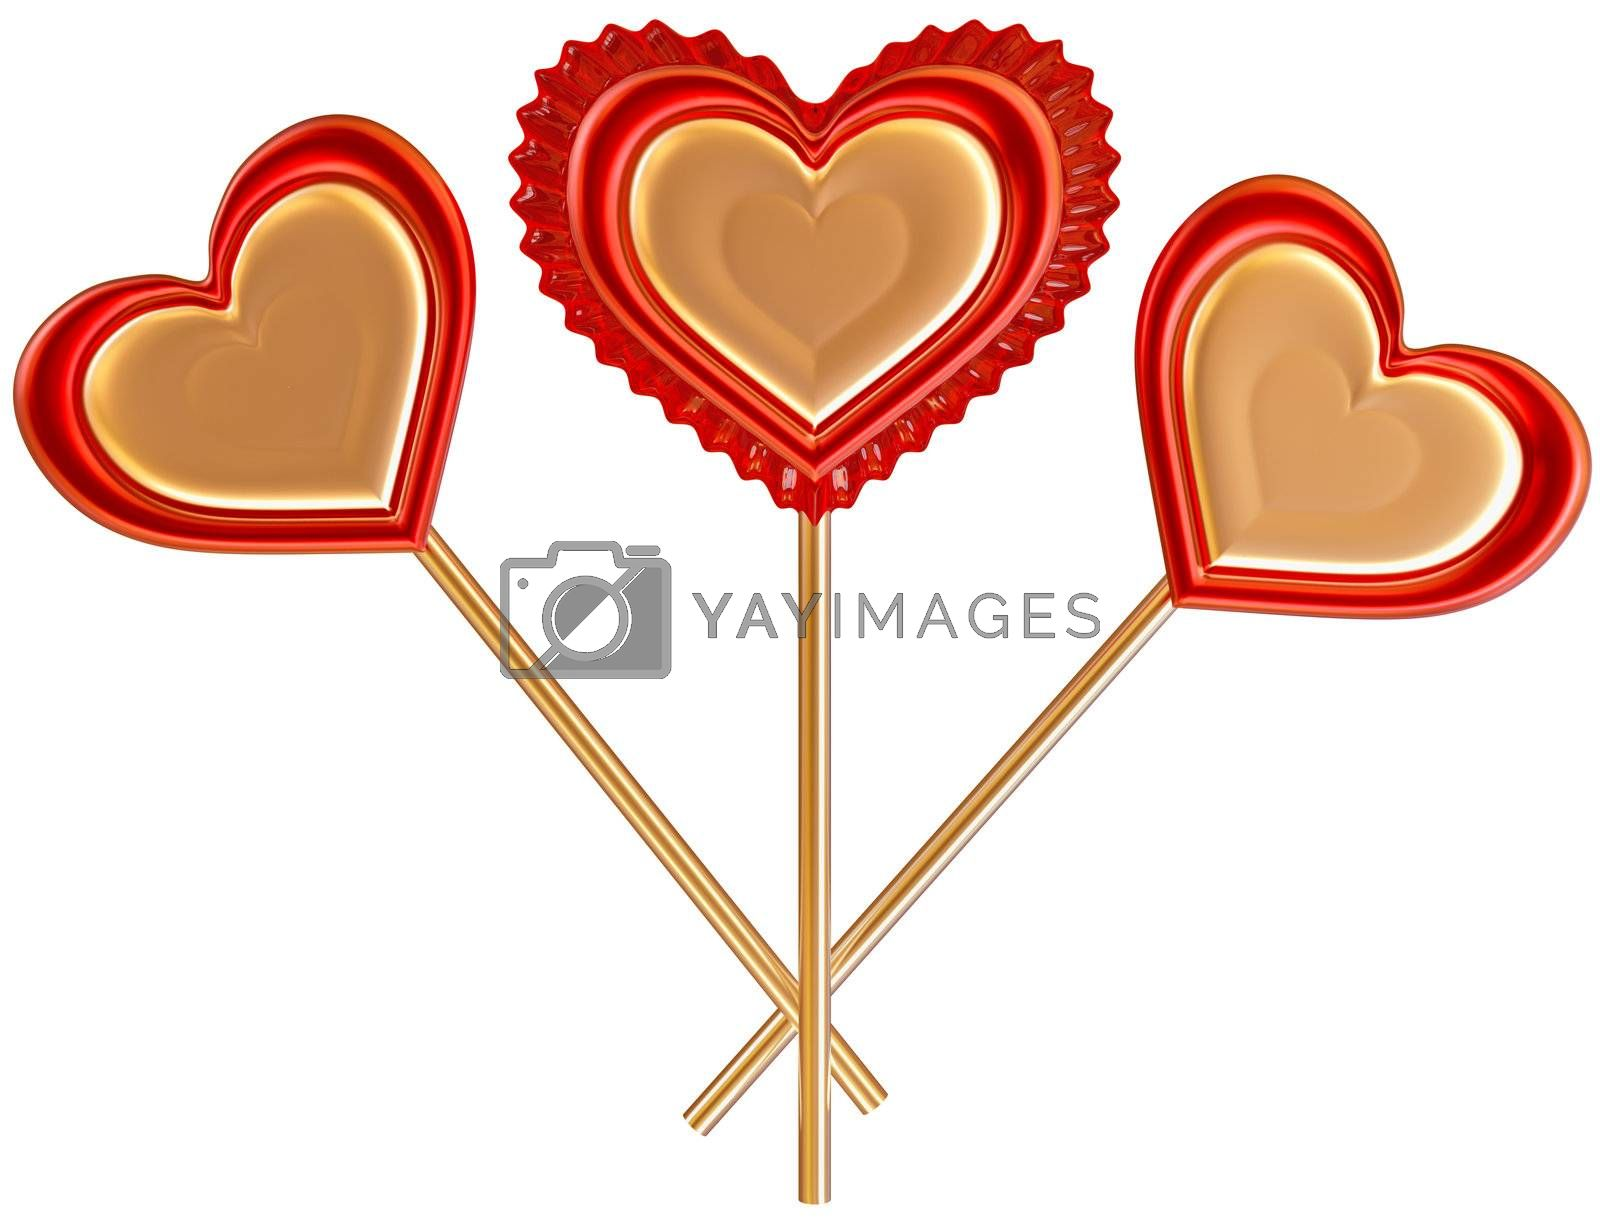 three golden and red lollipops on white background